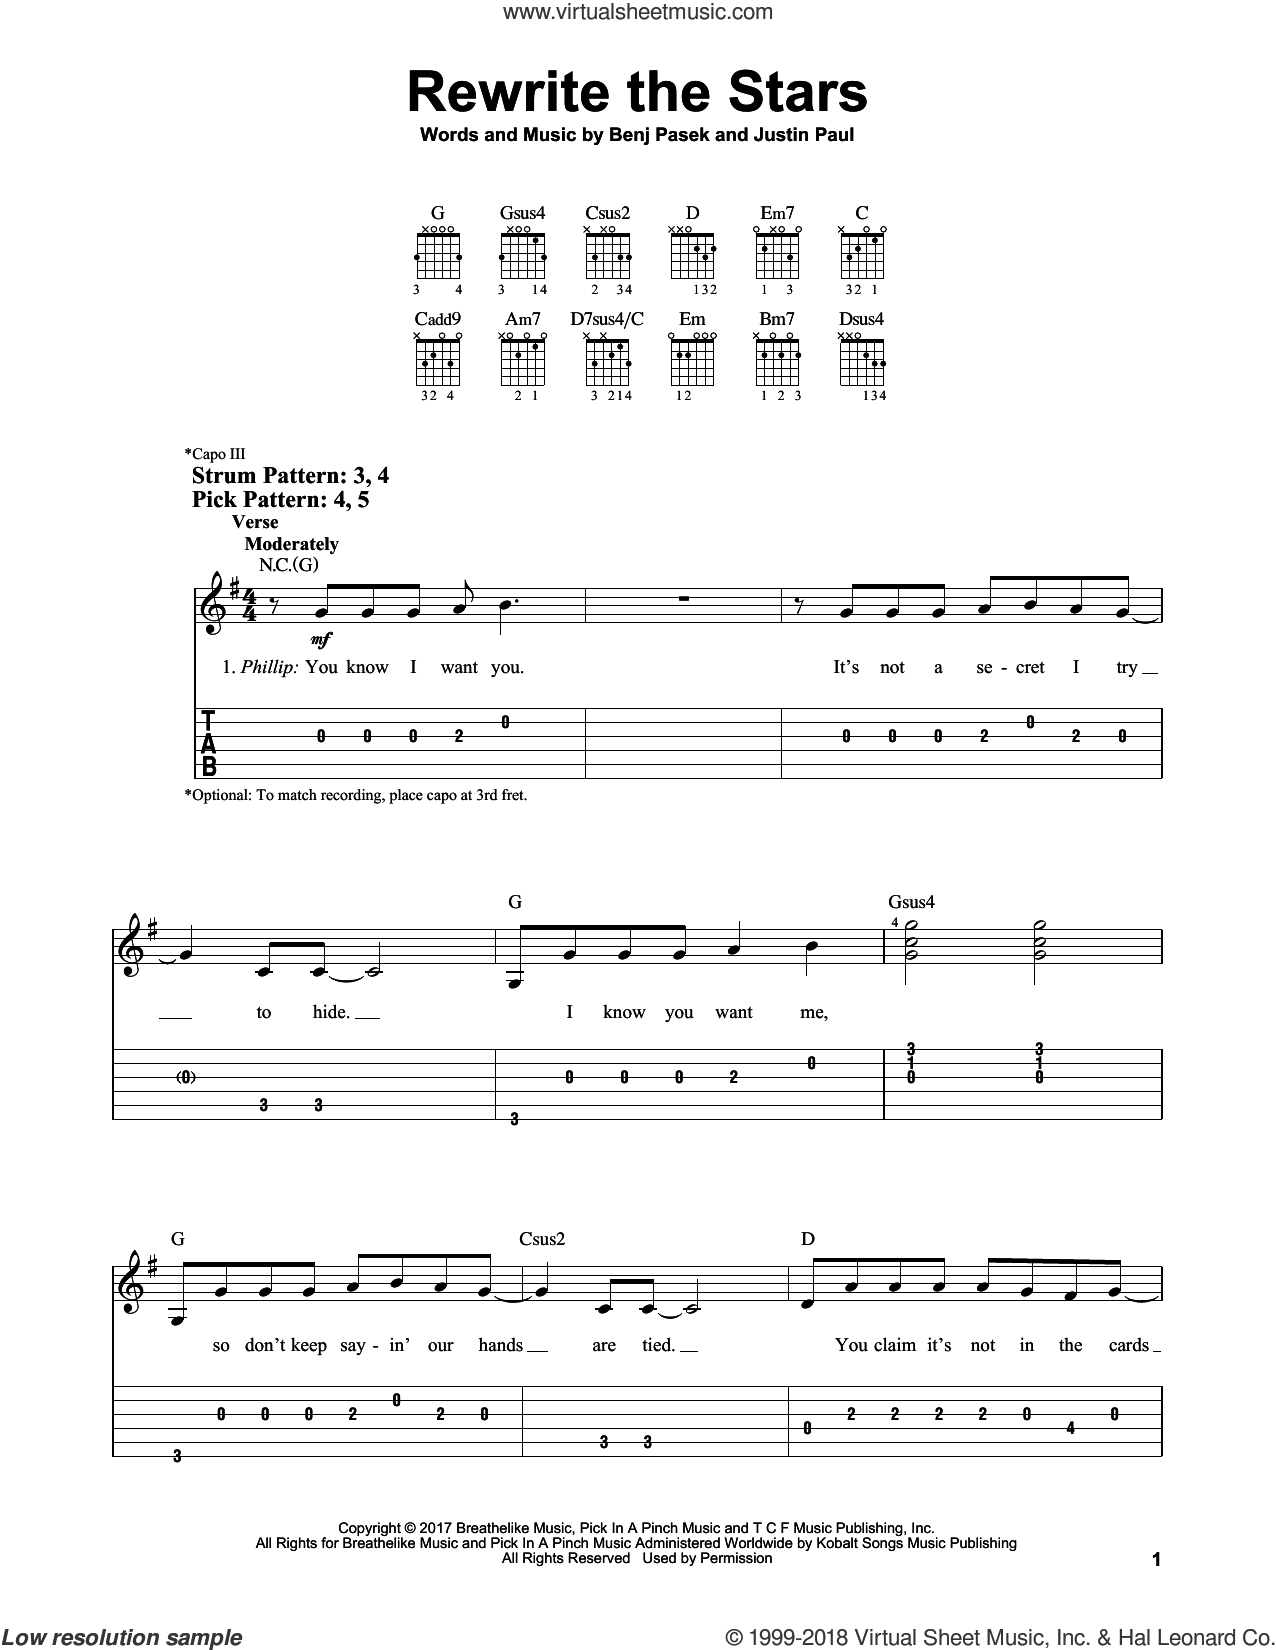 Rewrite The Stars sheet music for guitar solo (easy tablature) by Justin Paul, Zac Efron & Zendaya, Benj Pasek and Pasek & Paul, easy guitar (easy tablature)